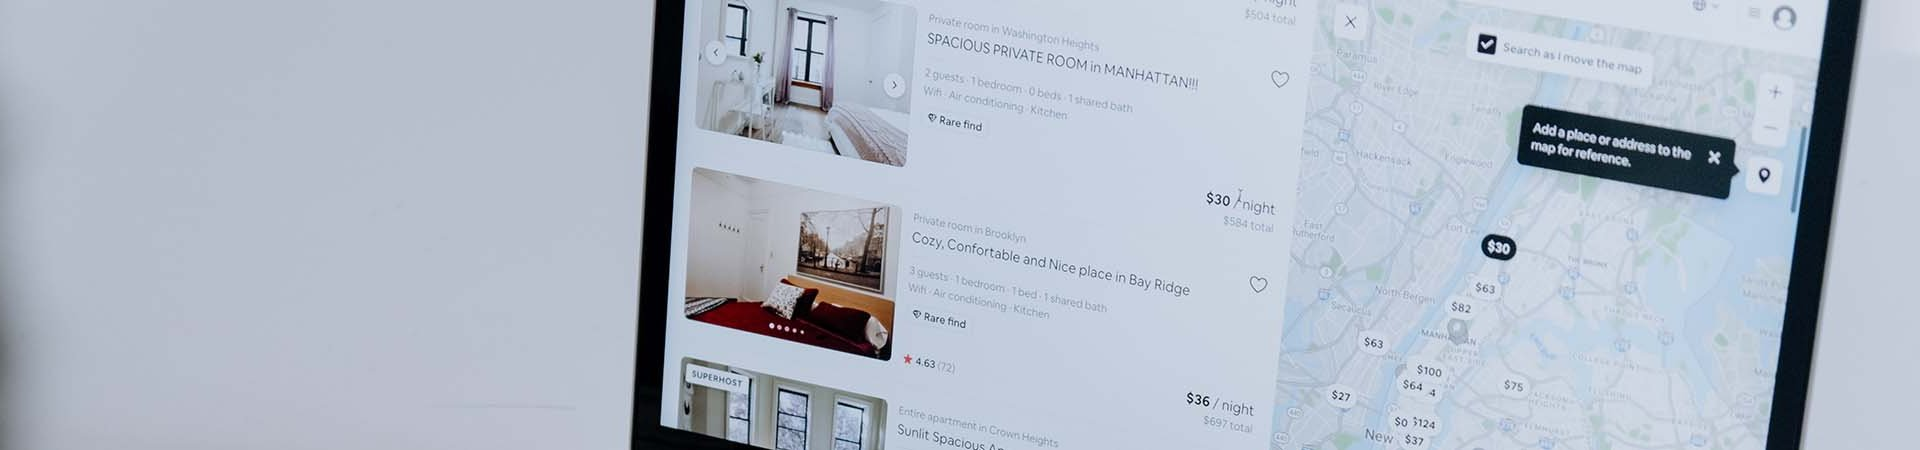 airbnb-in-apartments